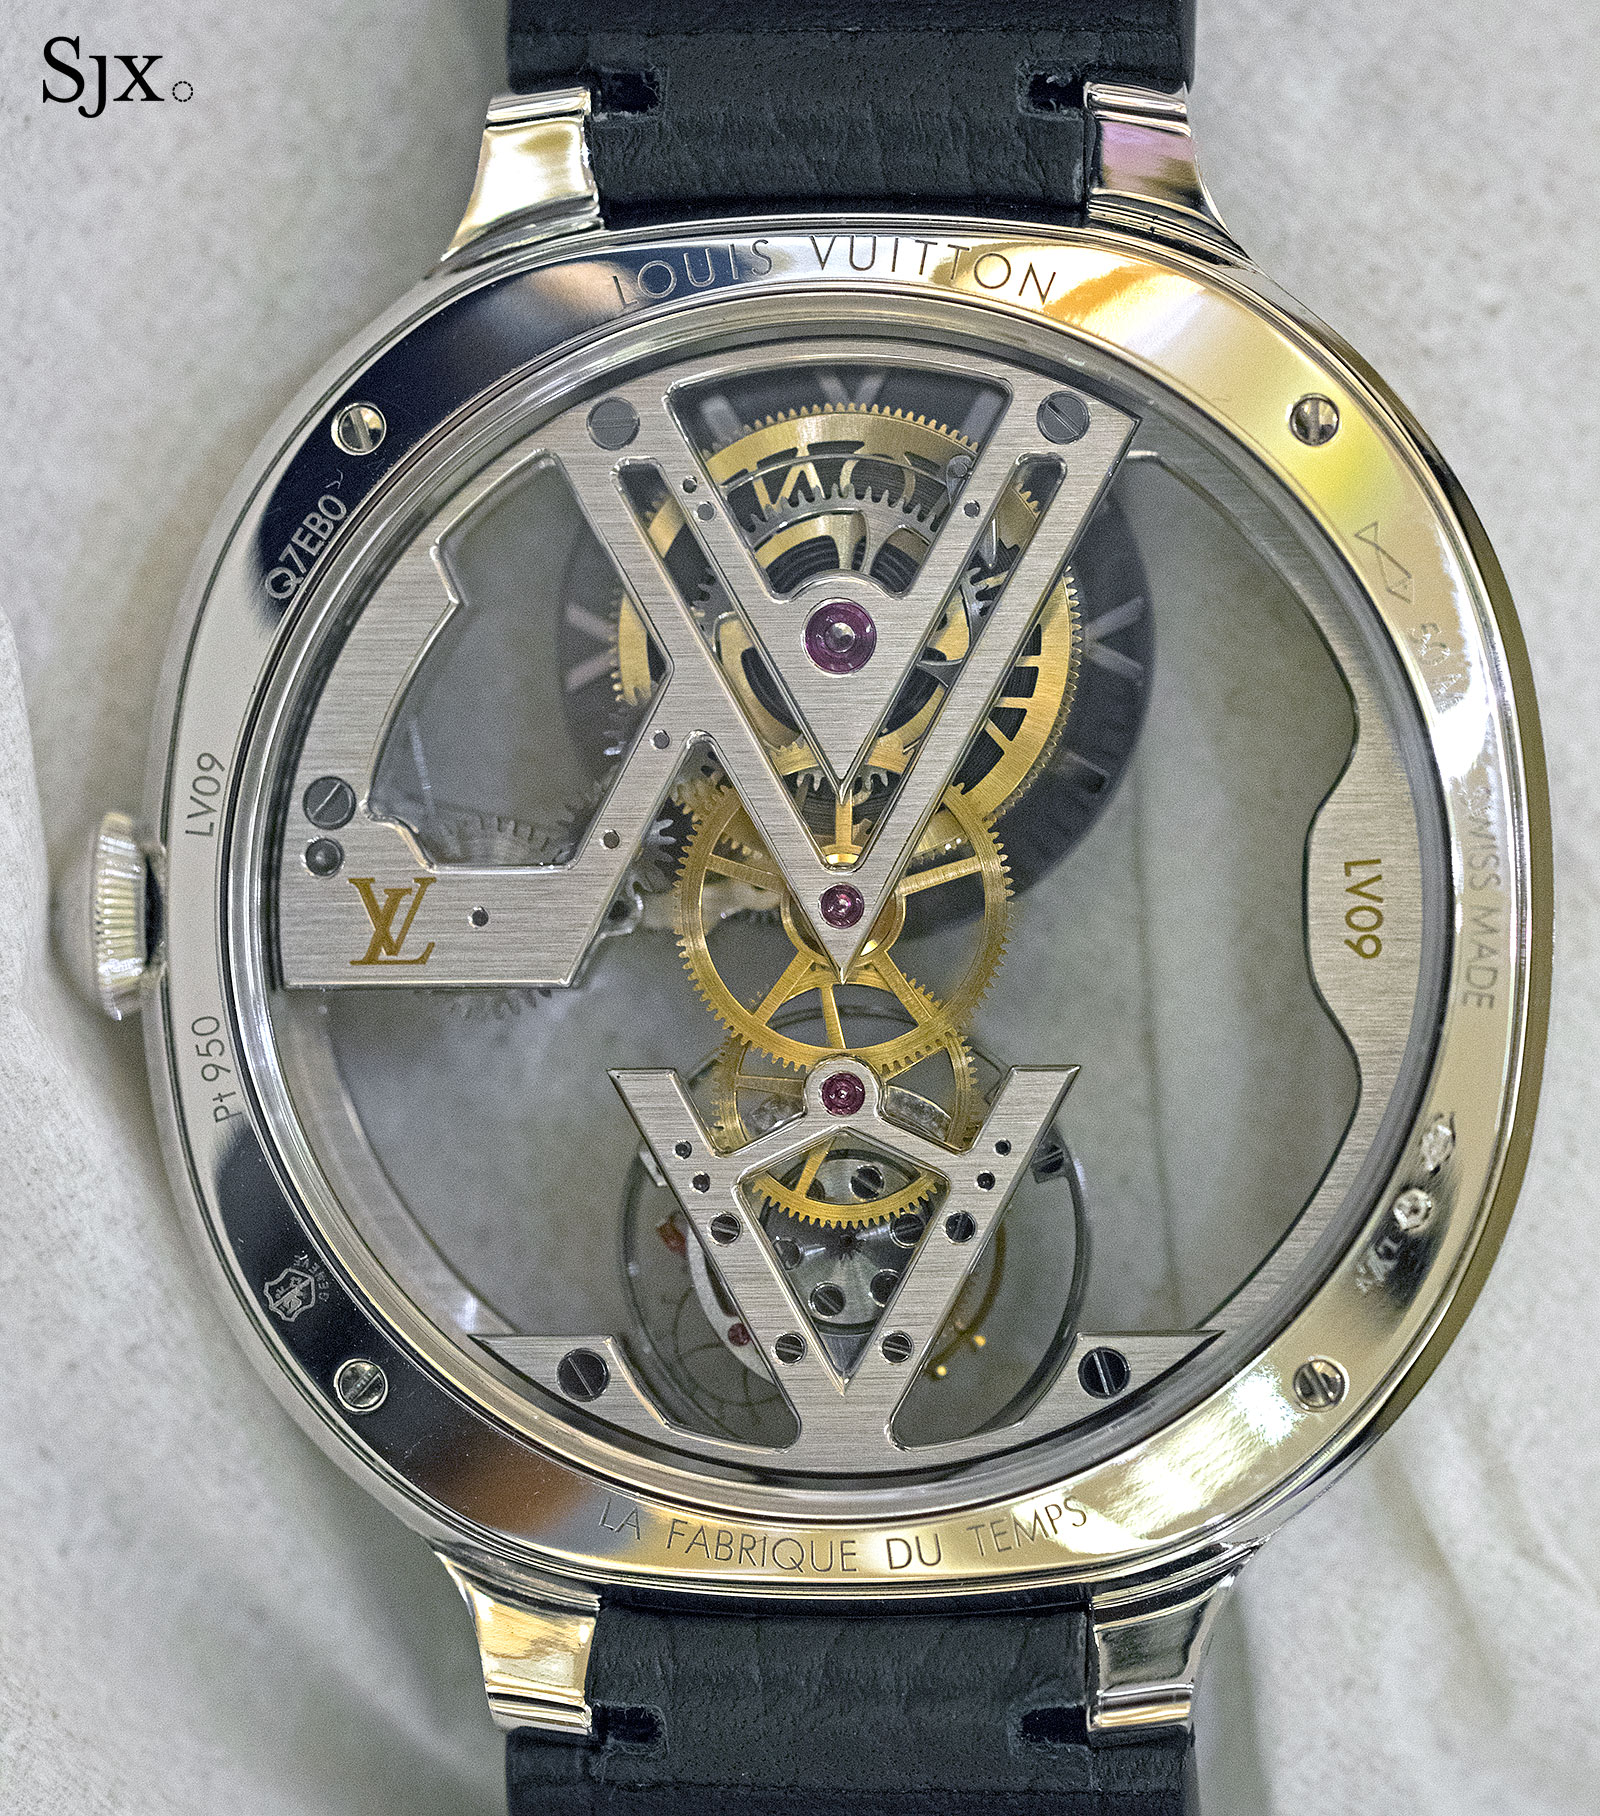 Louis Vuitton Flying Tourbillon Poinçon de Genève 7